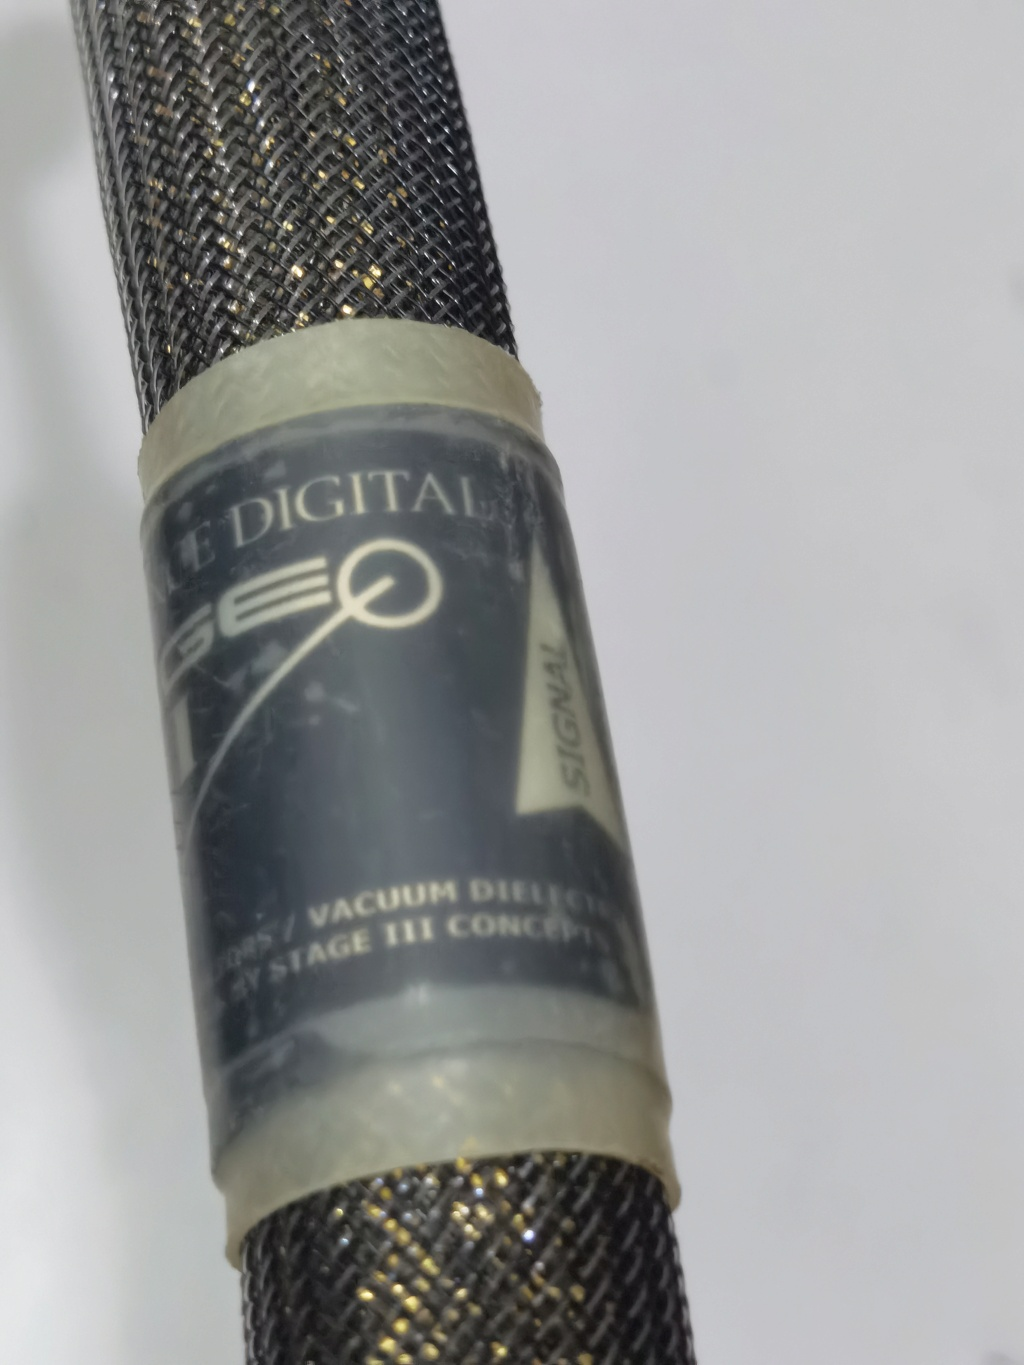 Stage lll vacuum reference xlr digital cable (used)  Img_2078